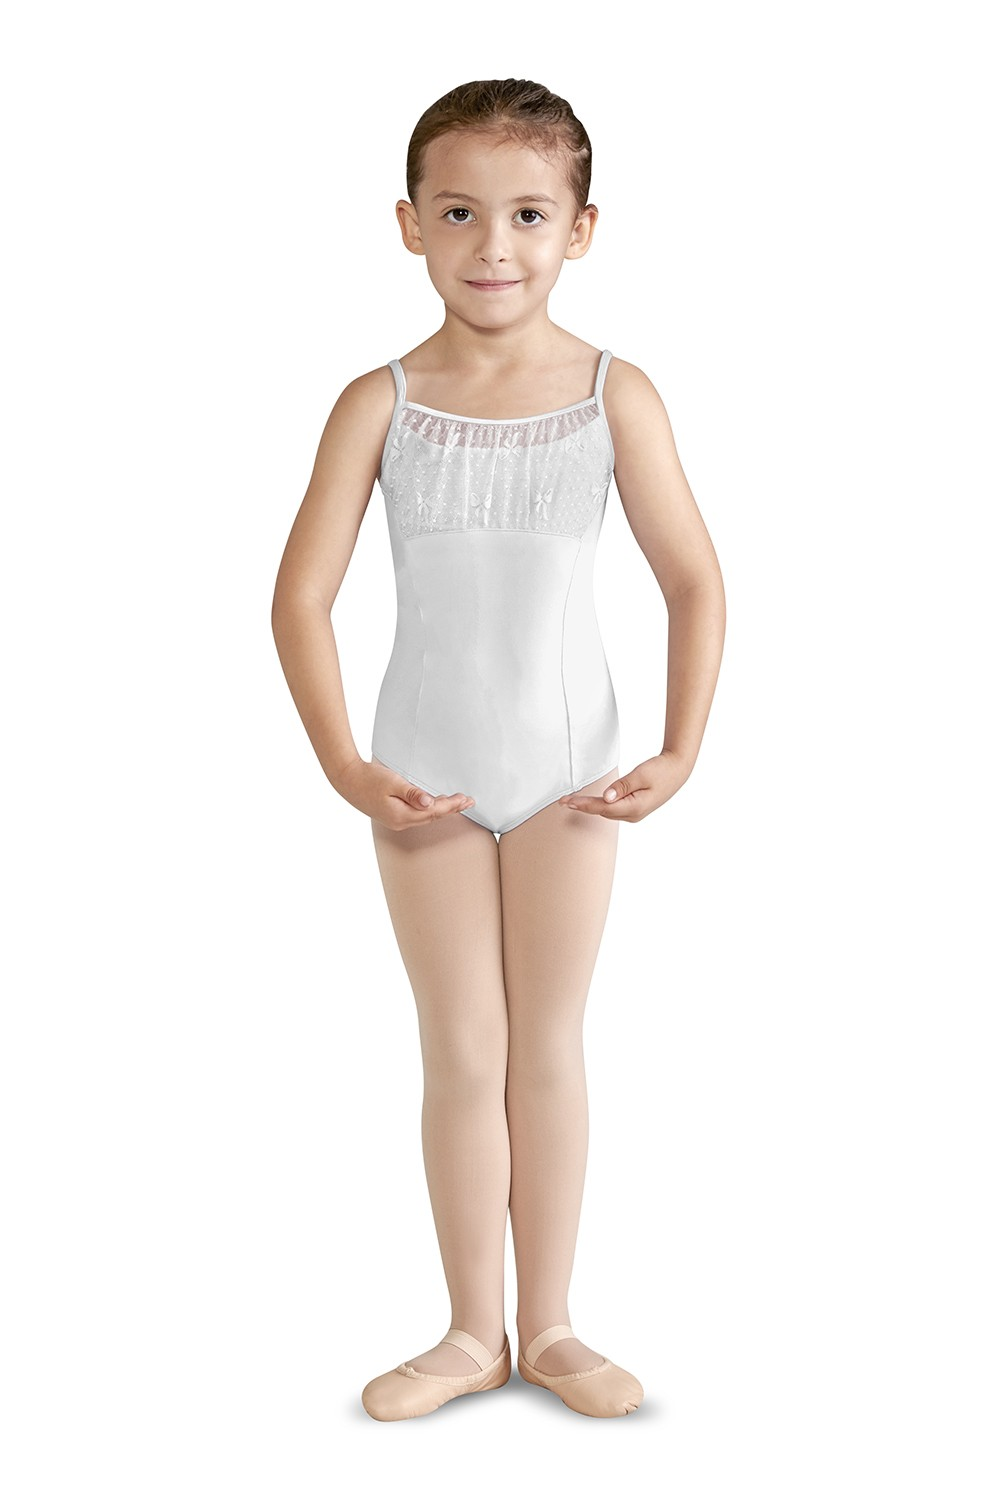 Rosette Girls Camisole Leotards